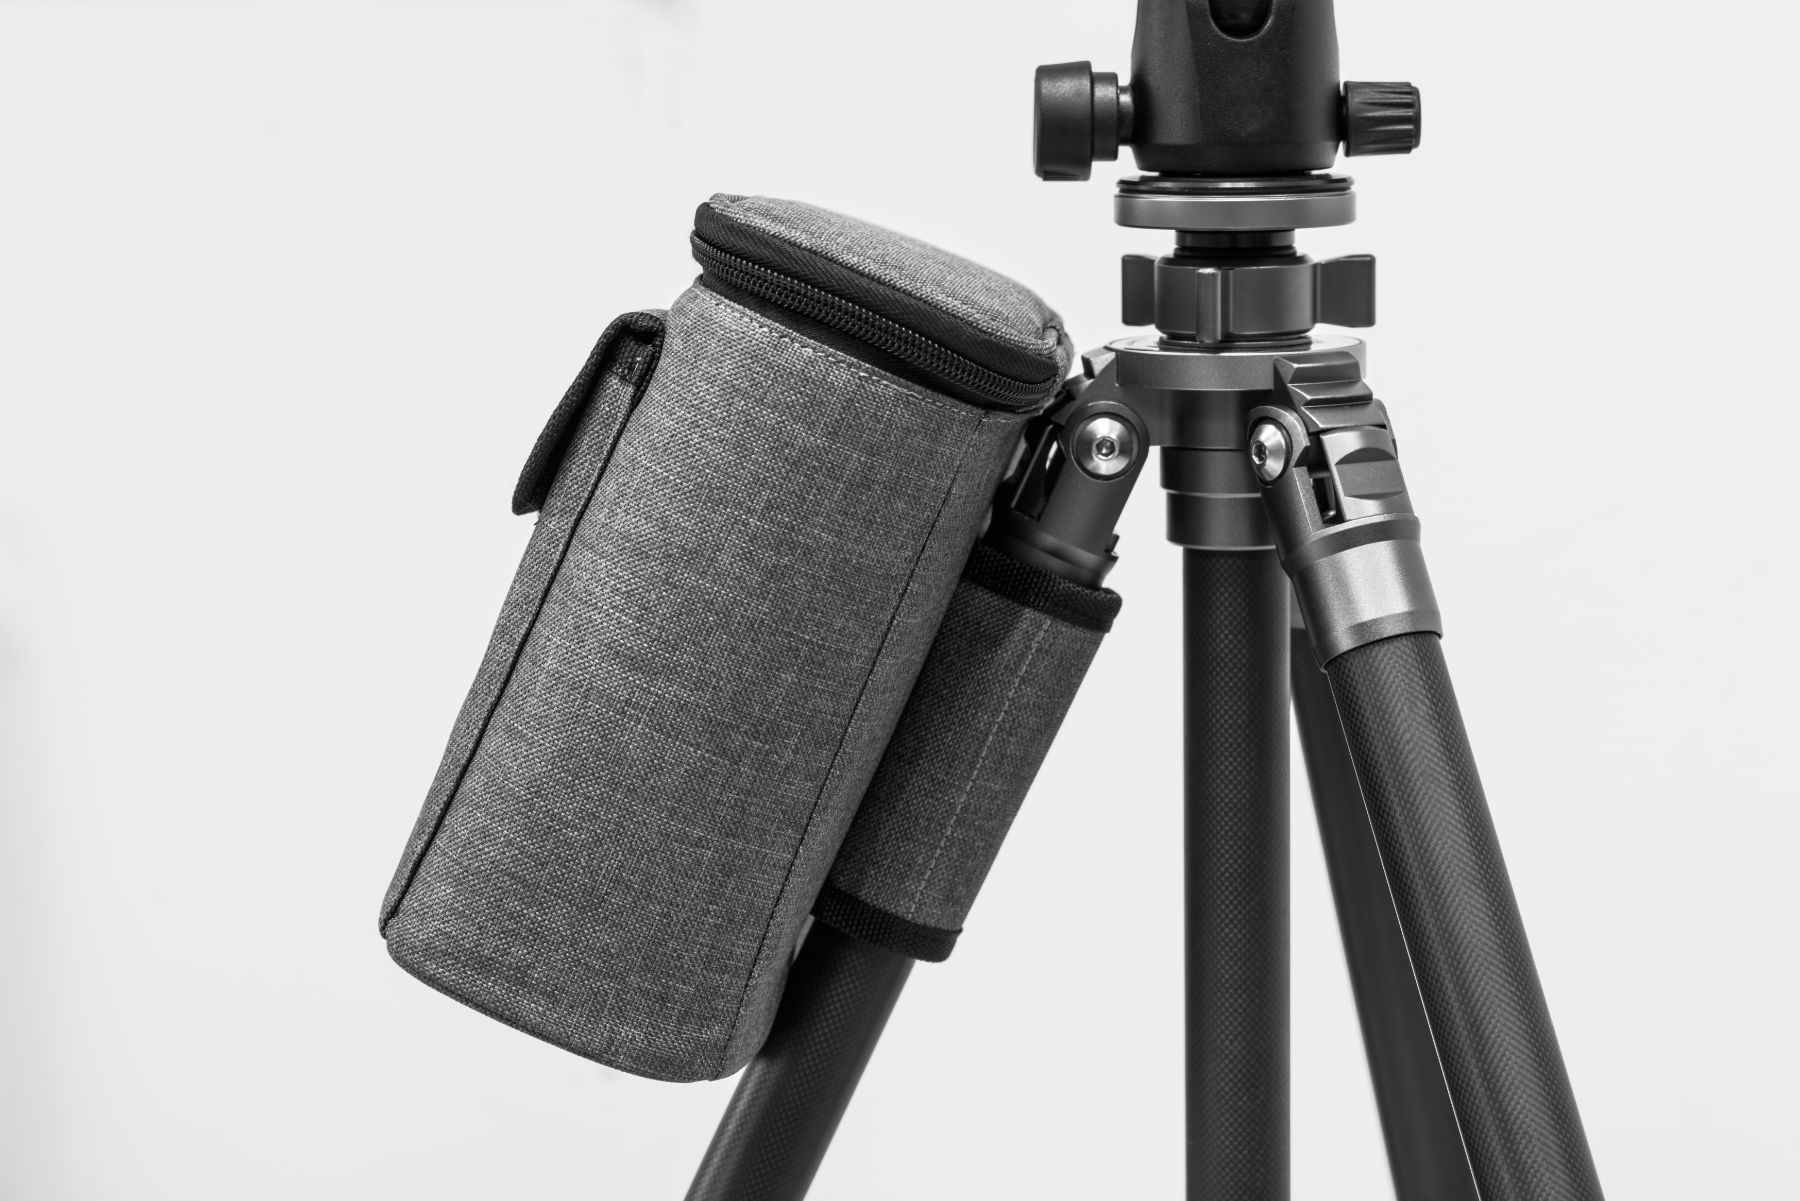 Ryan Fowler Photography Nisi S5 Kit 150mm Filter Holder With Cpl For Phantom 4 Pro Sigma 14mm F18 Dg